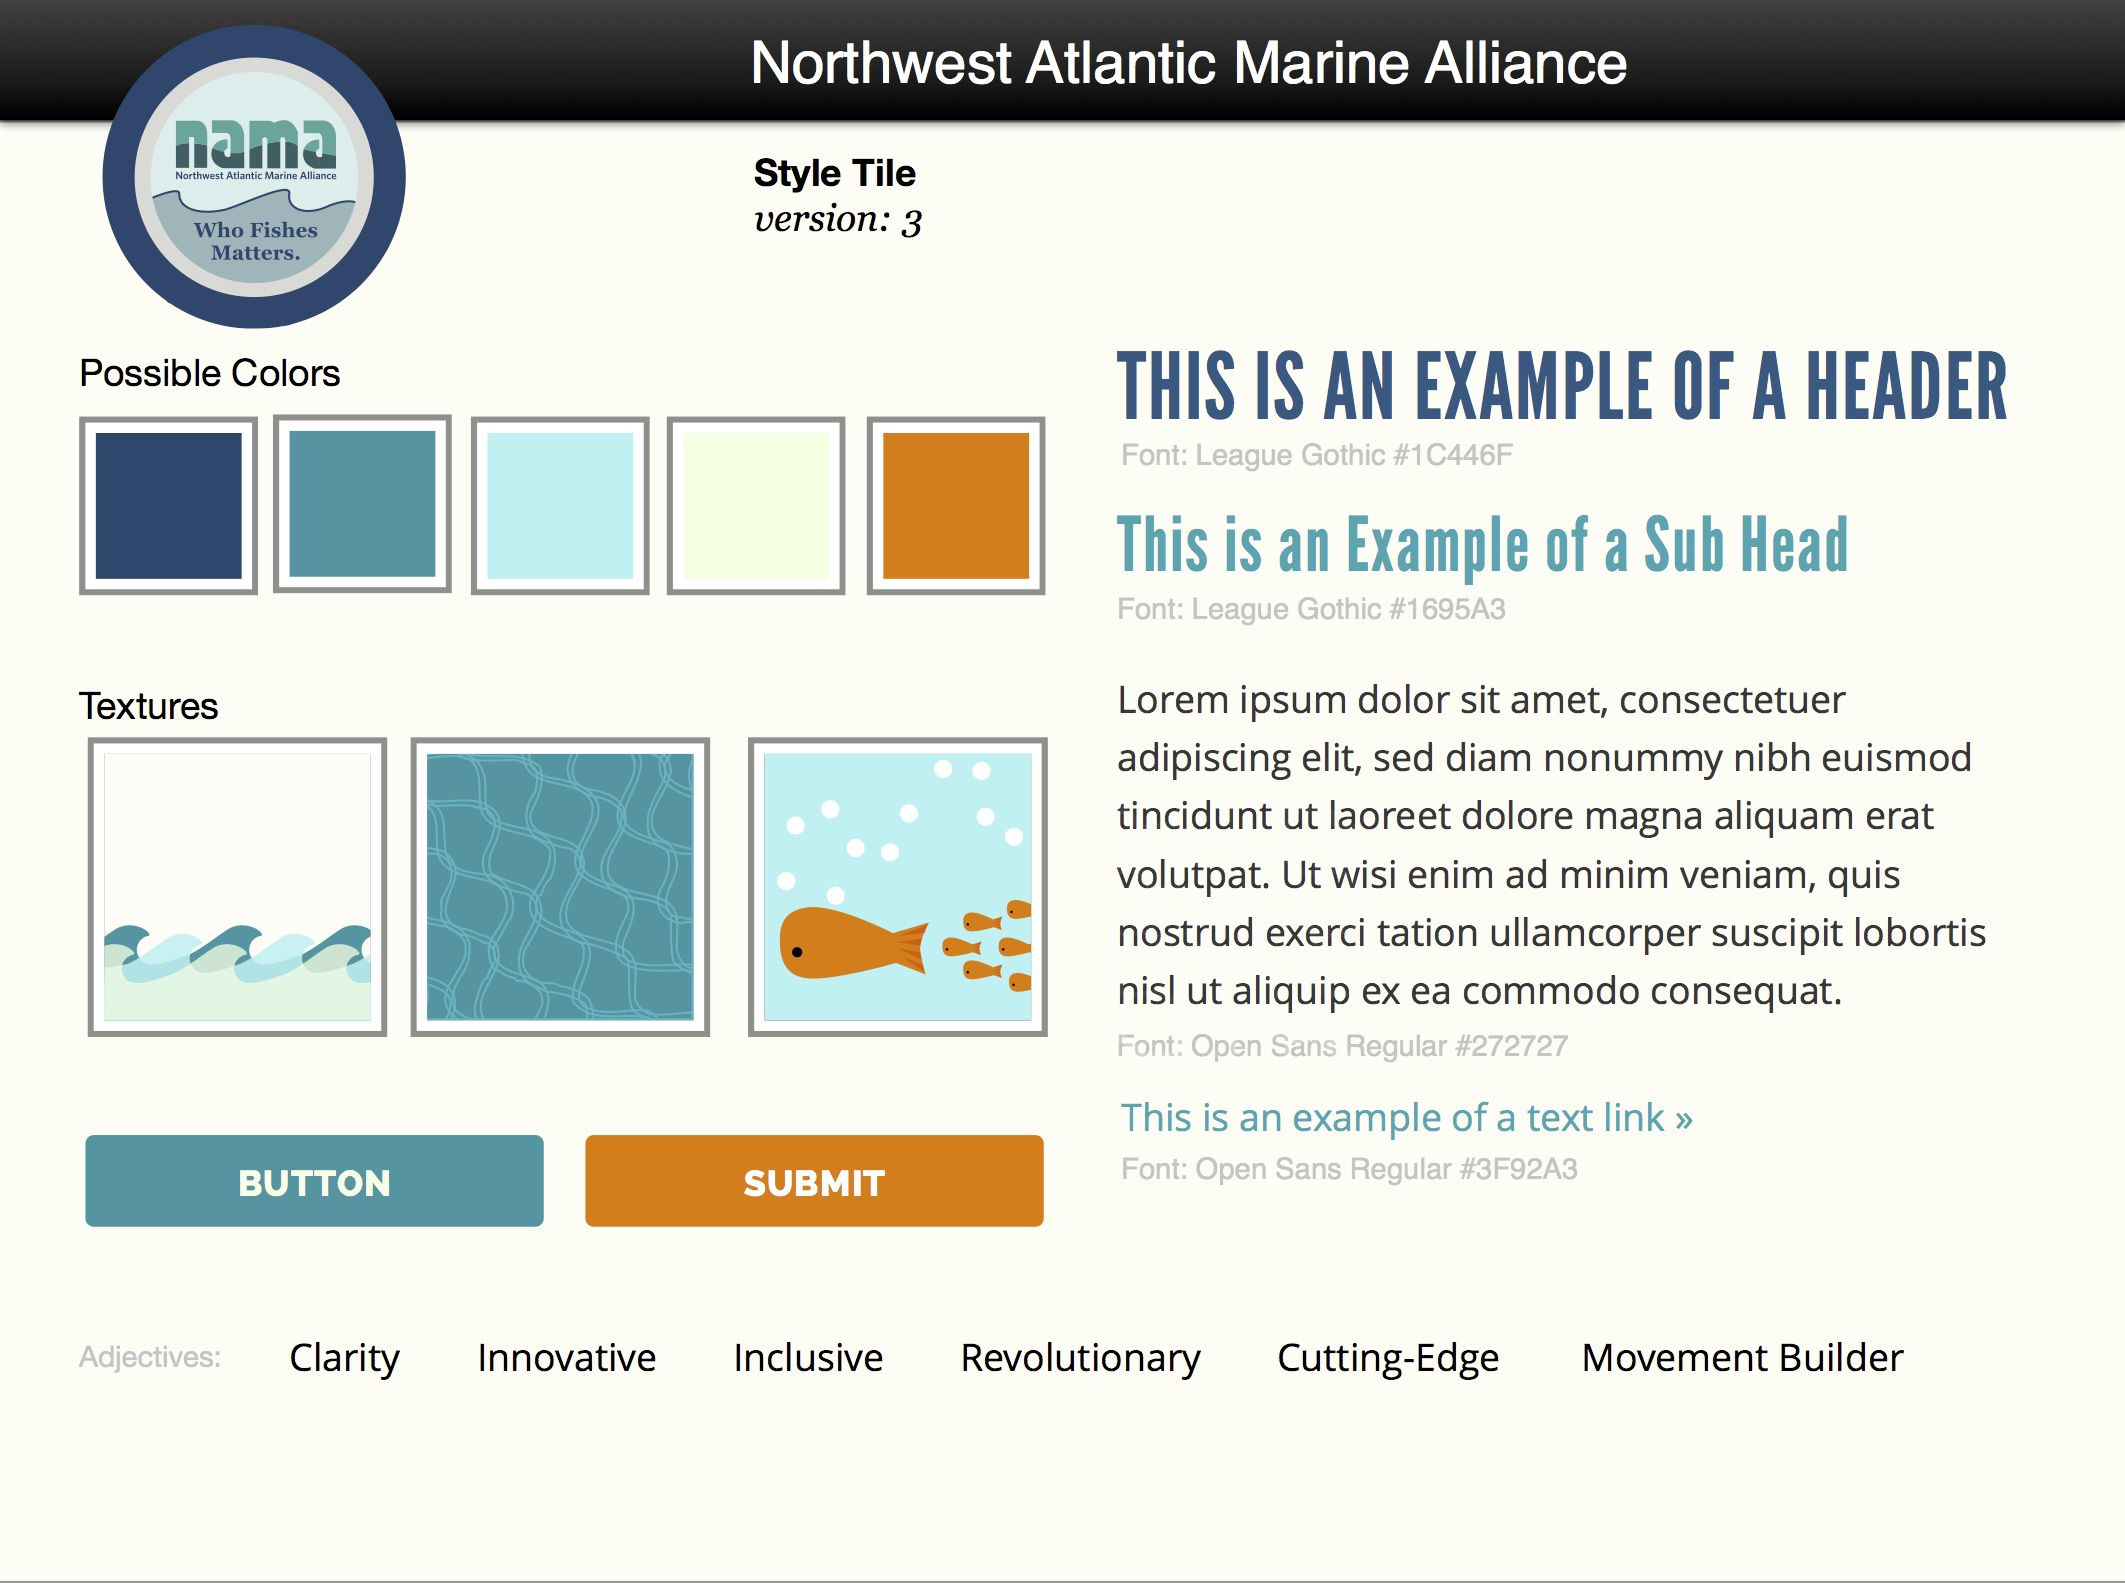 How We Built NAMA: Northwest Atlantic Marine Alliance